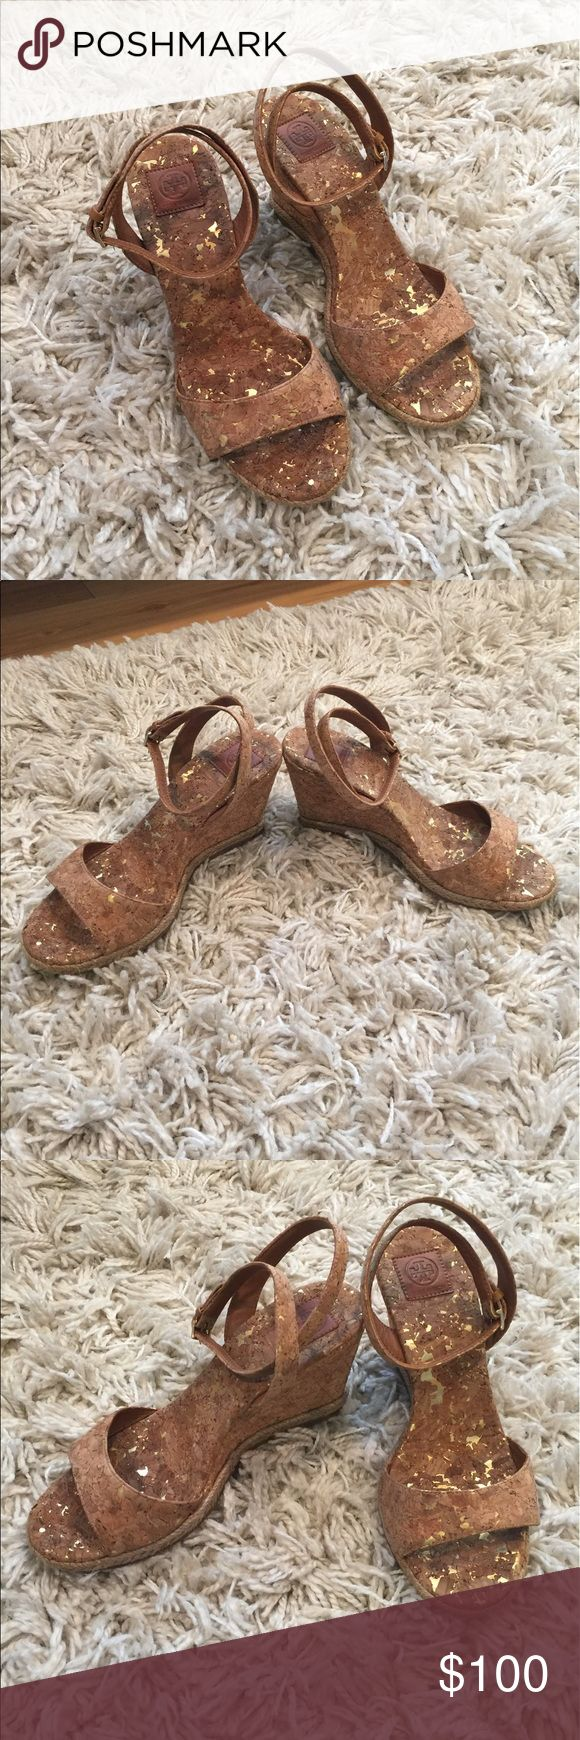 Tory Burch cork wedge sandals! Selling cute Tory Burch wedge cork sandals. Worn twice! There is slight discoloration on the sole... barely noticeable as you can see in the pics. Almost new condition as you can see from the bottom of the shoes. Perfect for summer! Tory Burch Shoes Sandals